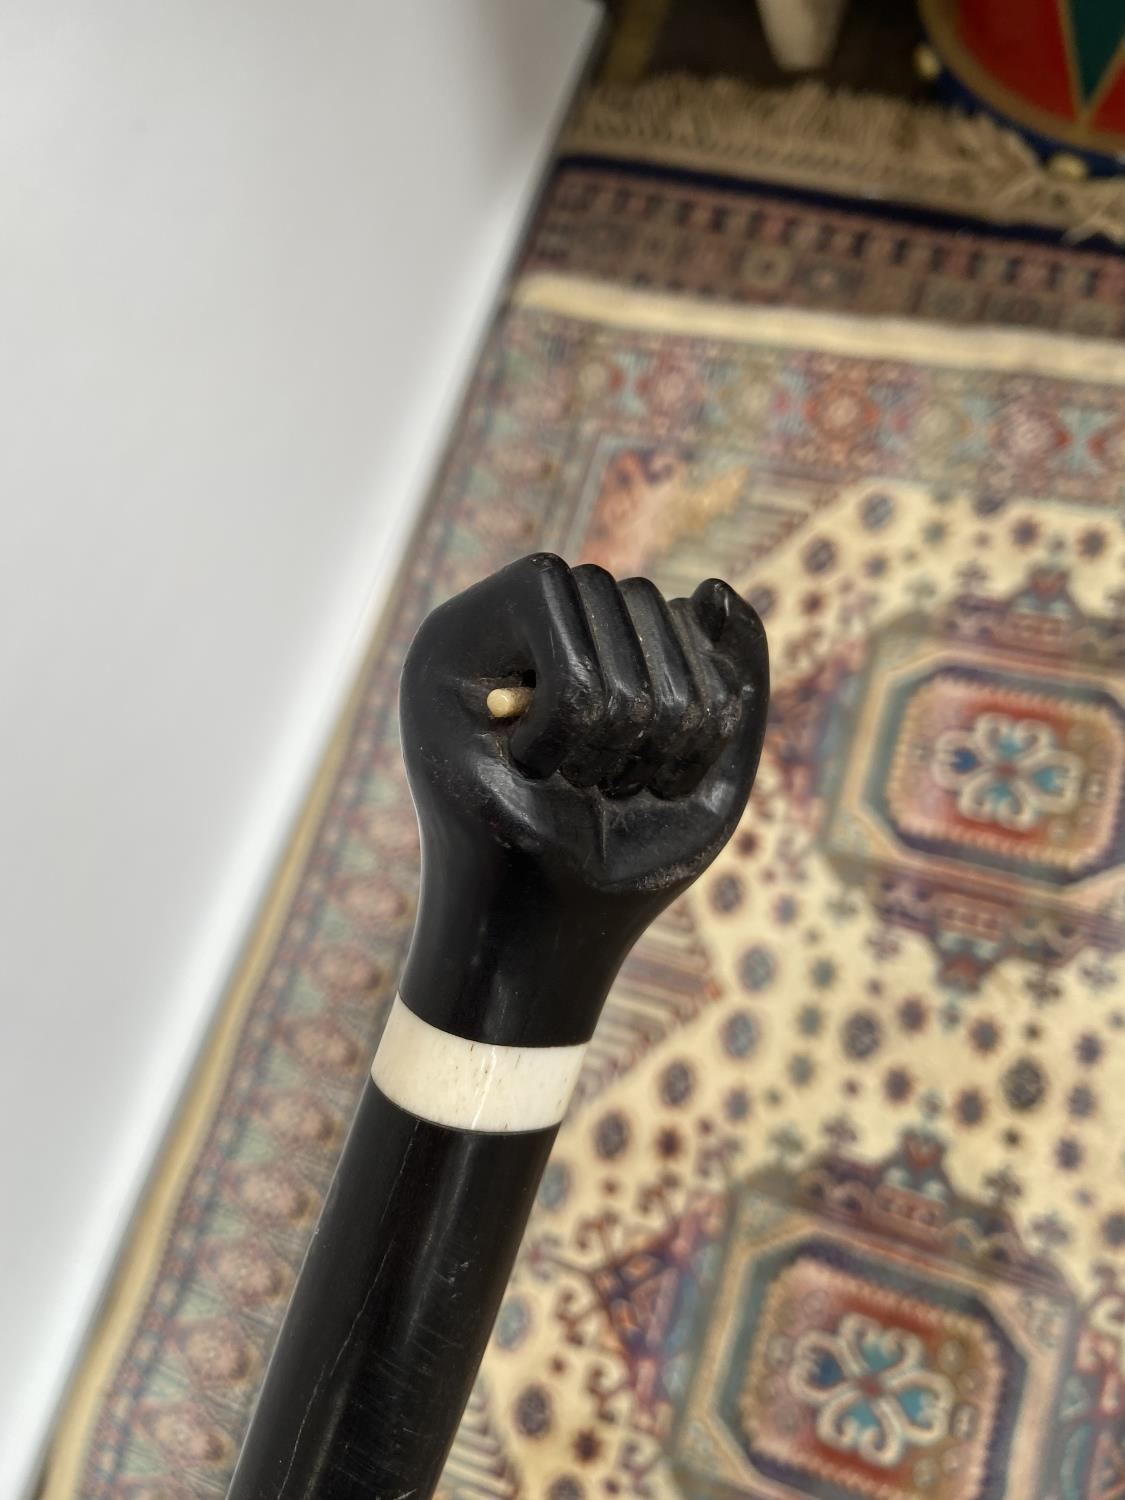 An antique ebony walking cane with a carving to the handle depicting a hand [length 85cm] - Image 2 of 4